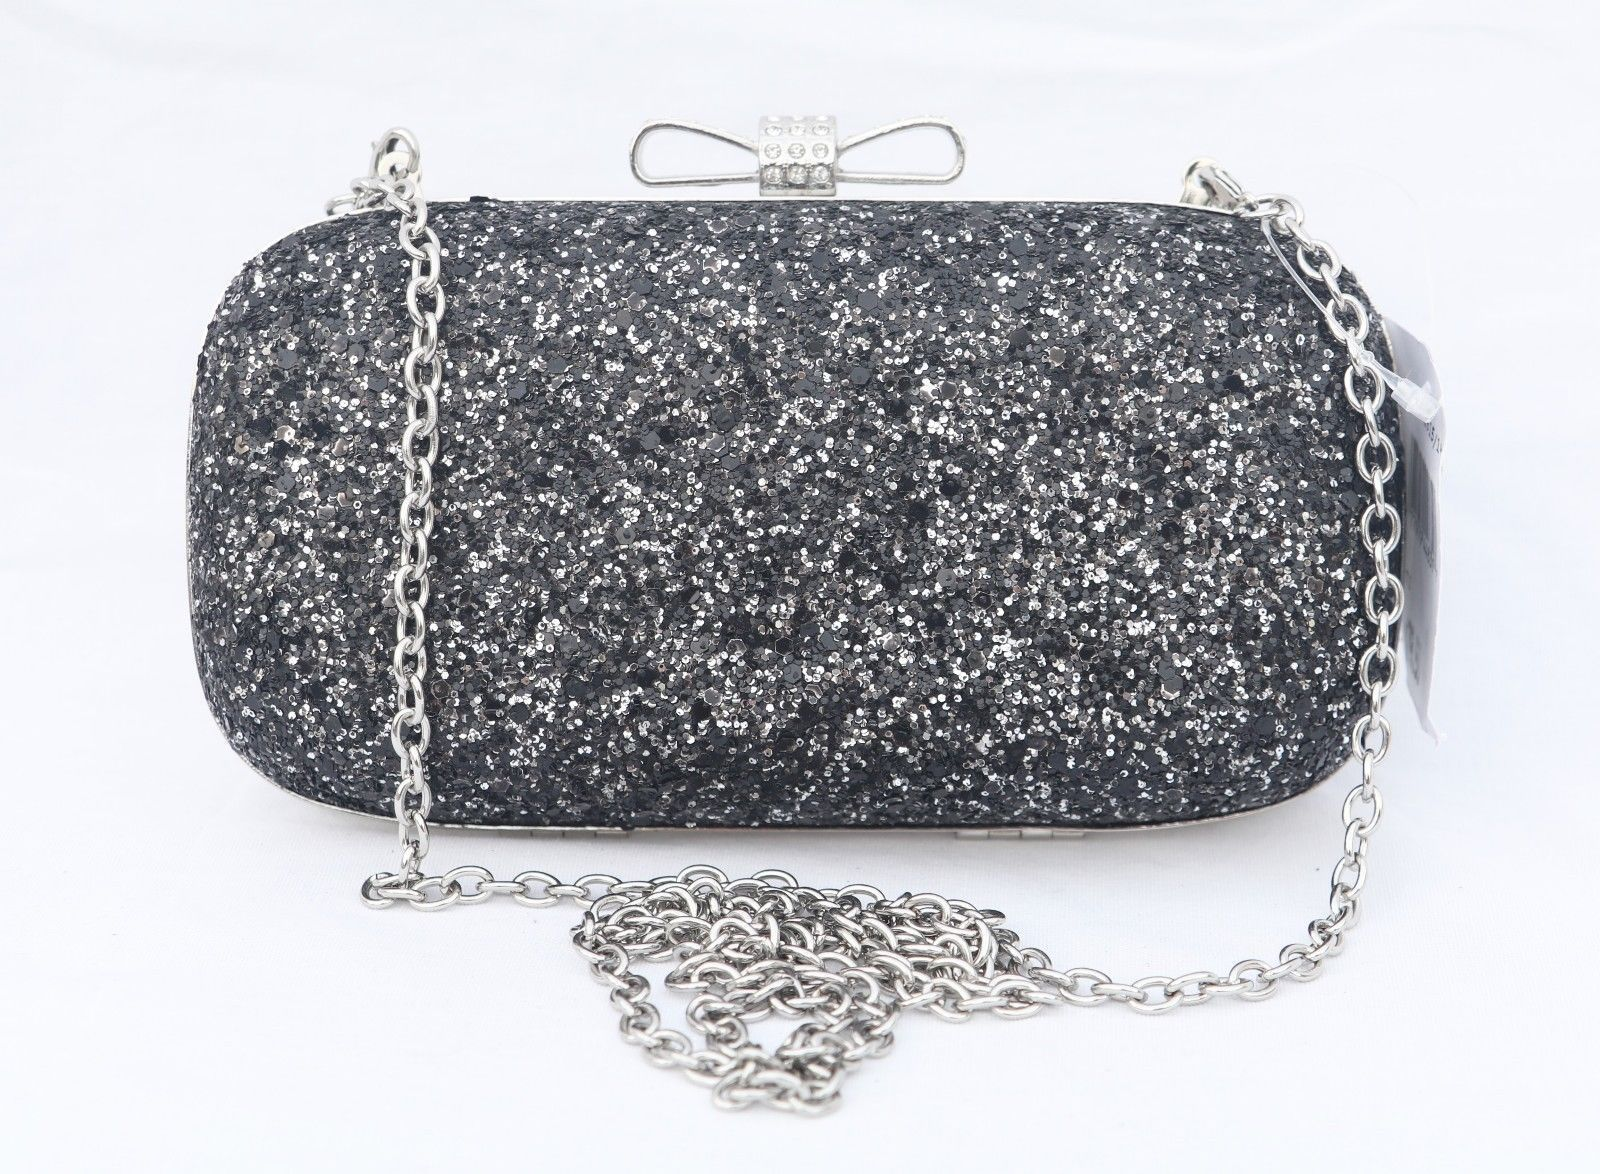 2fc229c5a41 18.00 | INC International Concepts Evie Black Silver Glitter Clutch Evening  Bag ❤ #international #concepts #silver #glitter #clutch #evening #Outfits  ...